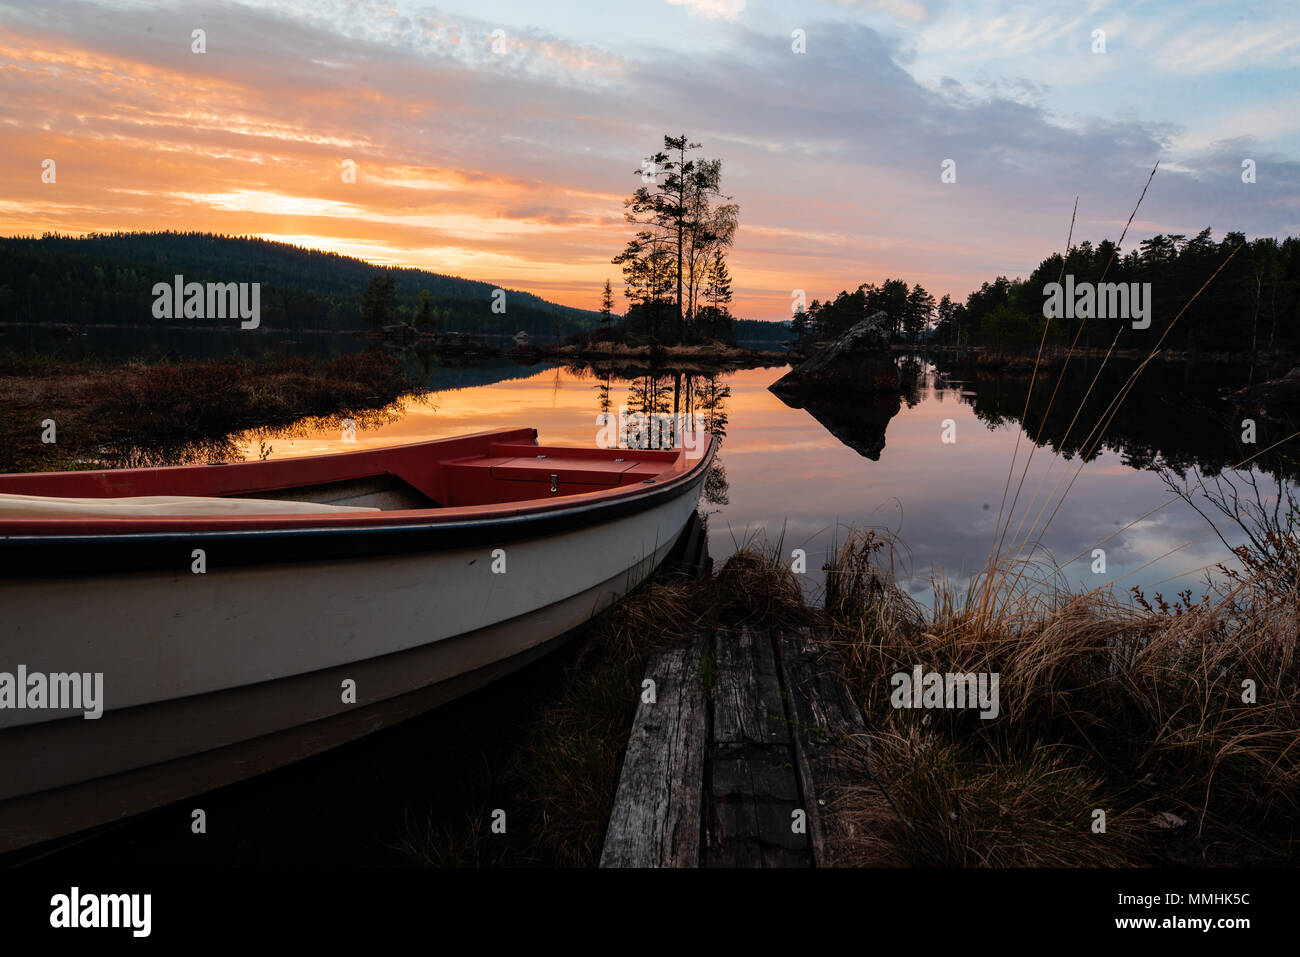 boat ready for fishing in a calm lake with a lovely sunset in sweden may 2018 - Stock Image